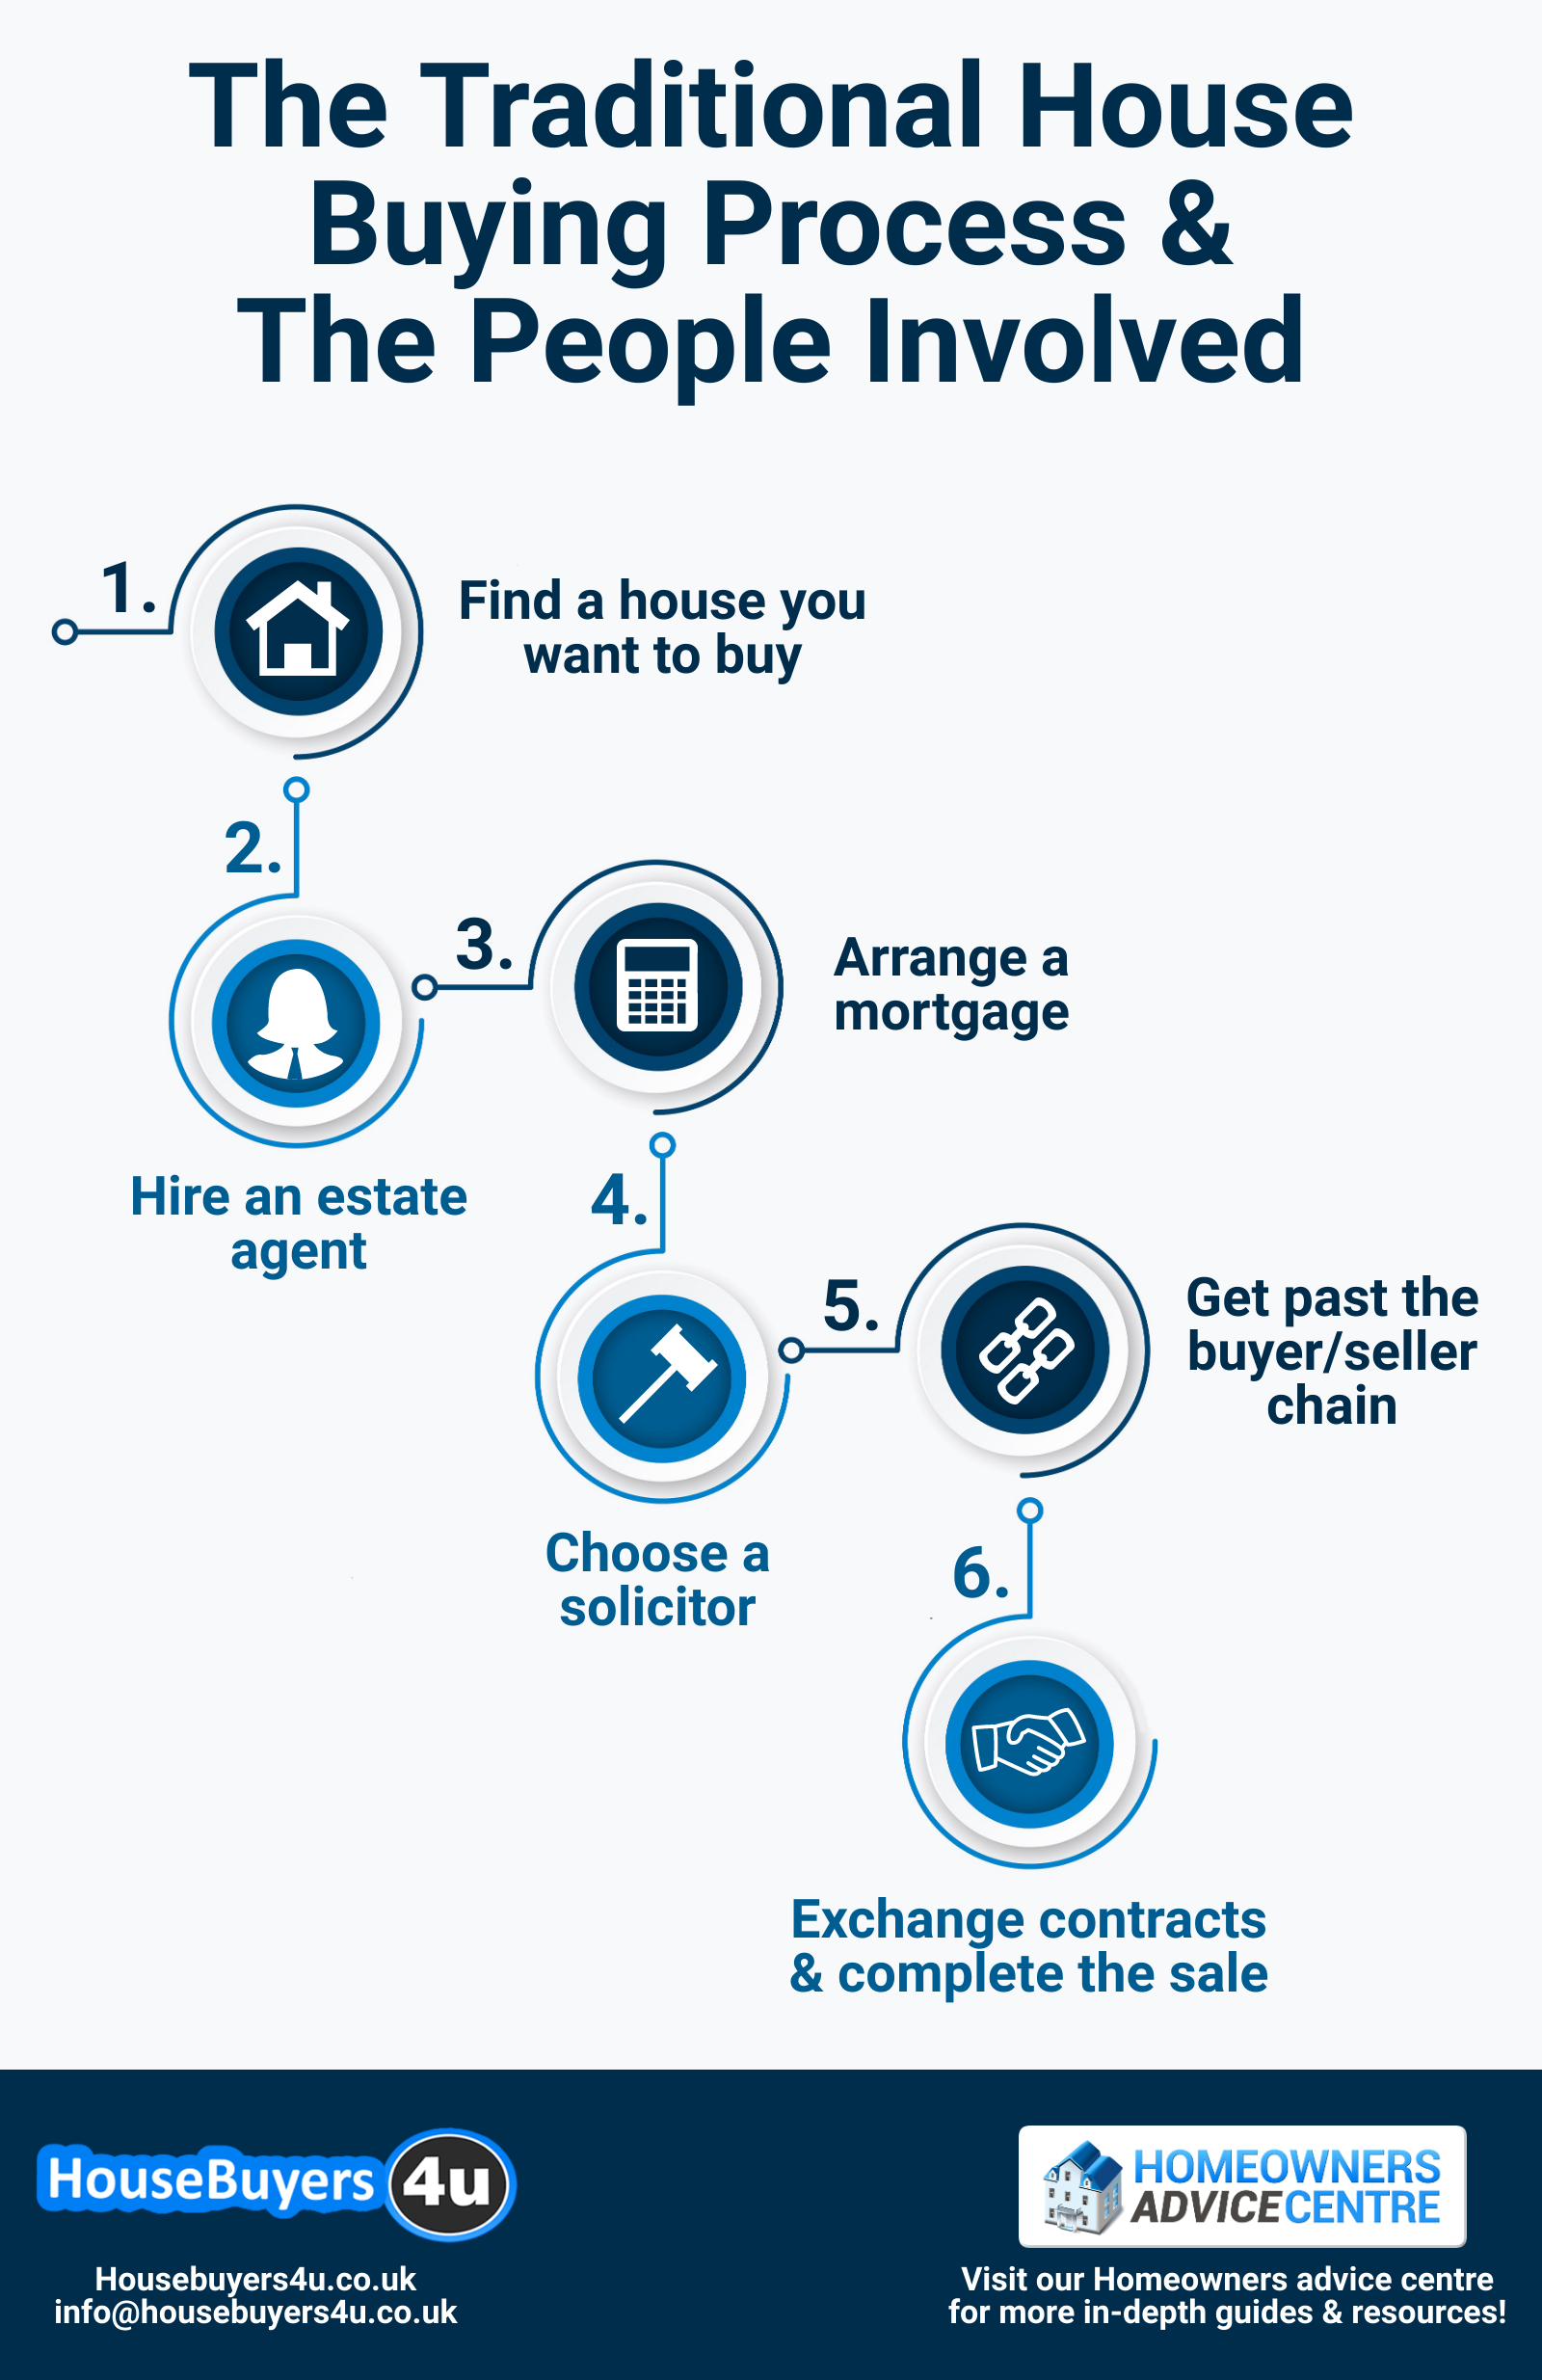 The traditional house buying process and the people involved